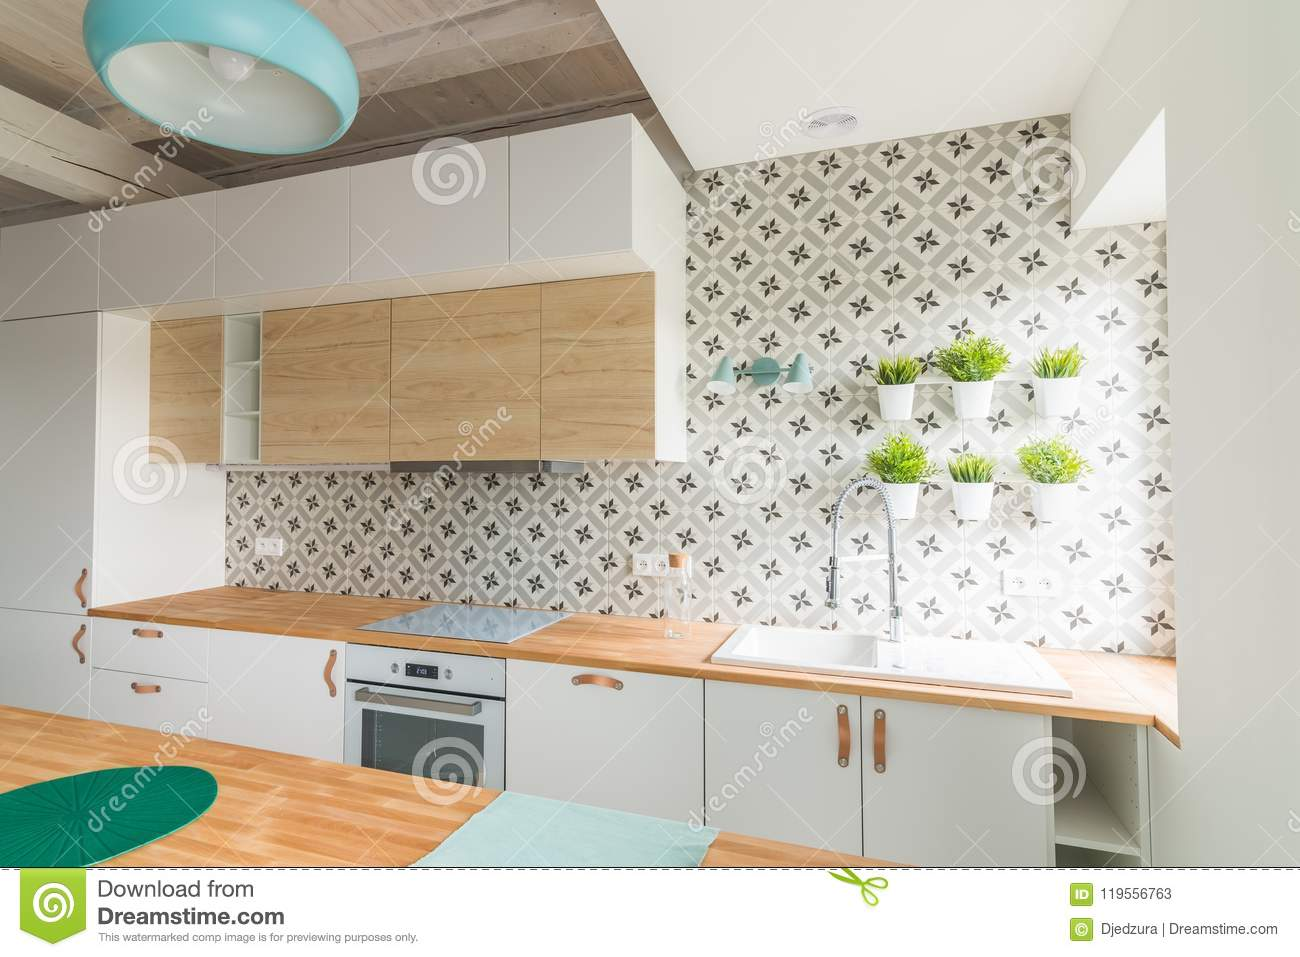 Modern White Kitchen Cabinets With Induction Hob Stock Image Image Of Space Stove 119556763